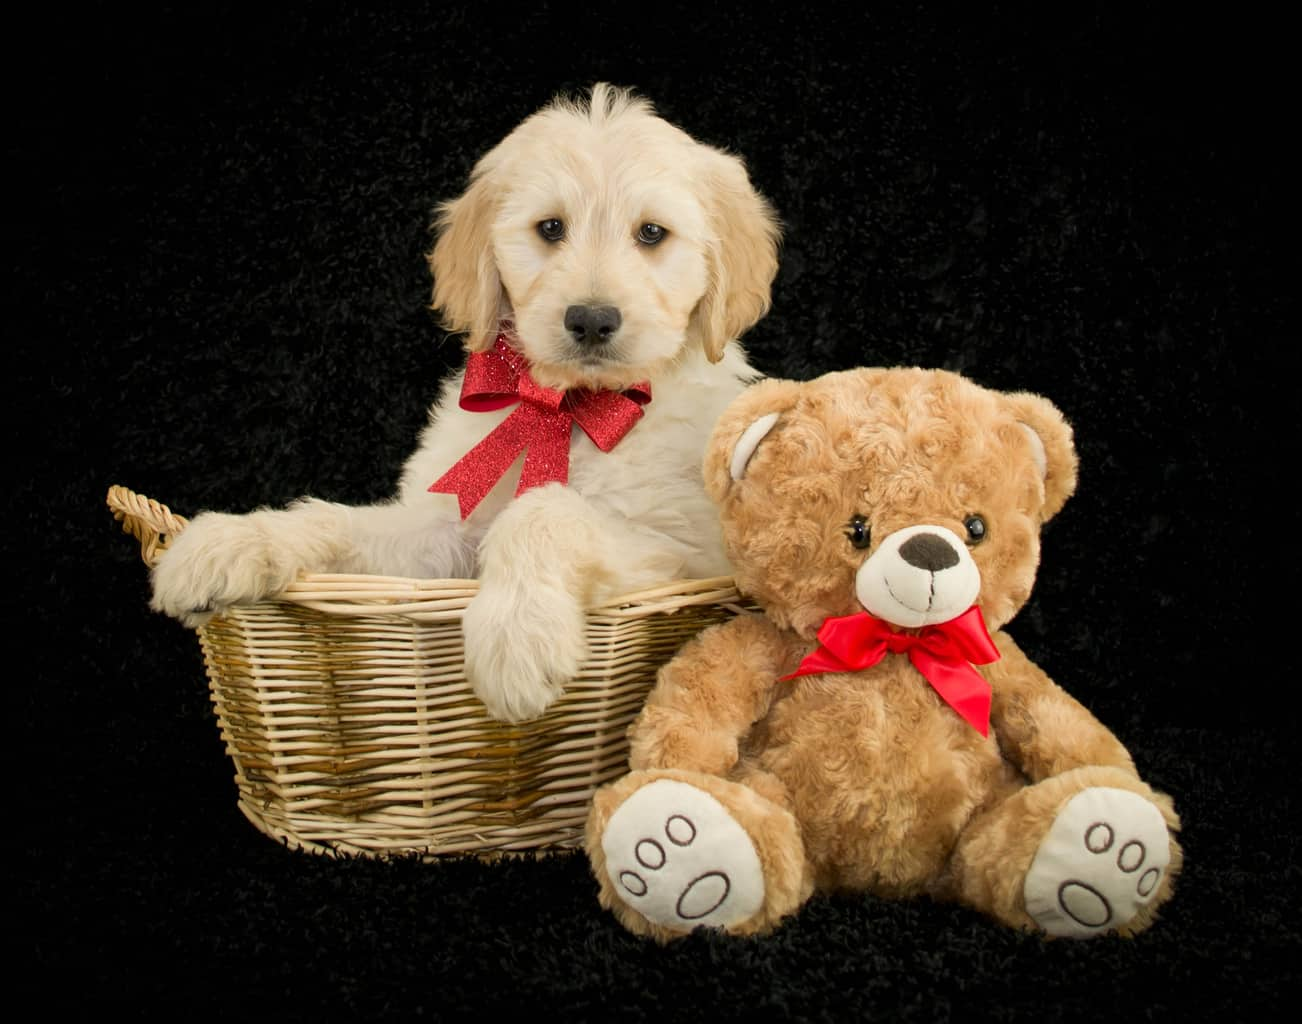 Teddy Bear Goldendoodle Vs Goldendoodle The Differences Explained